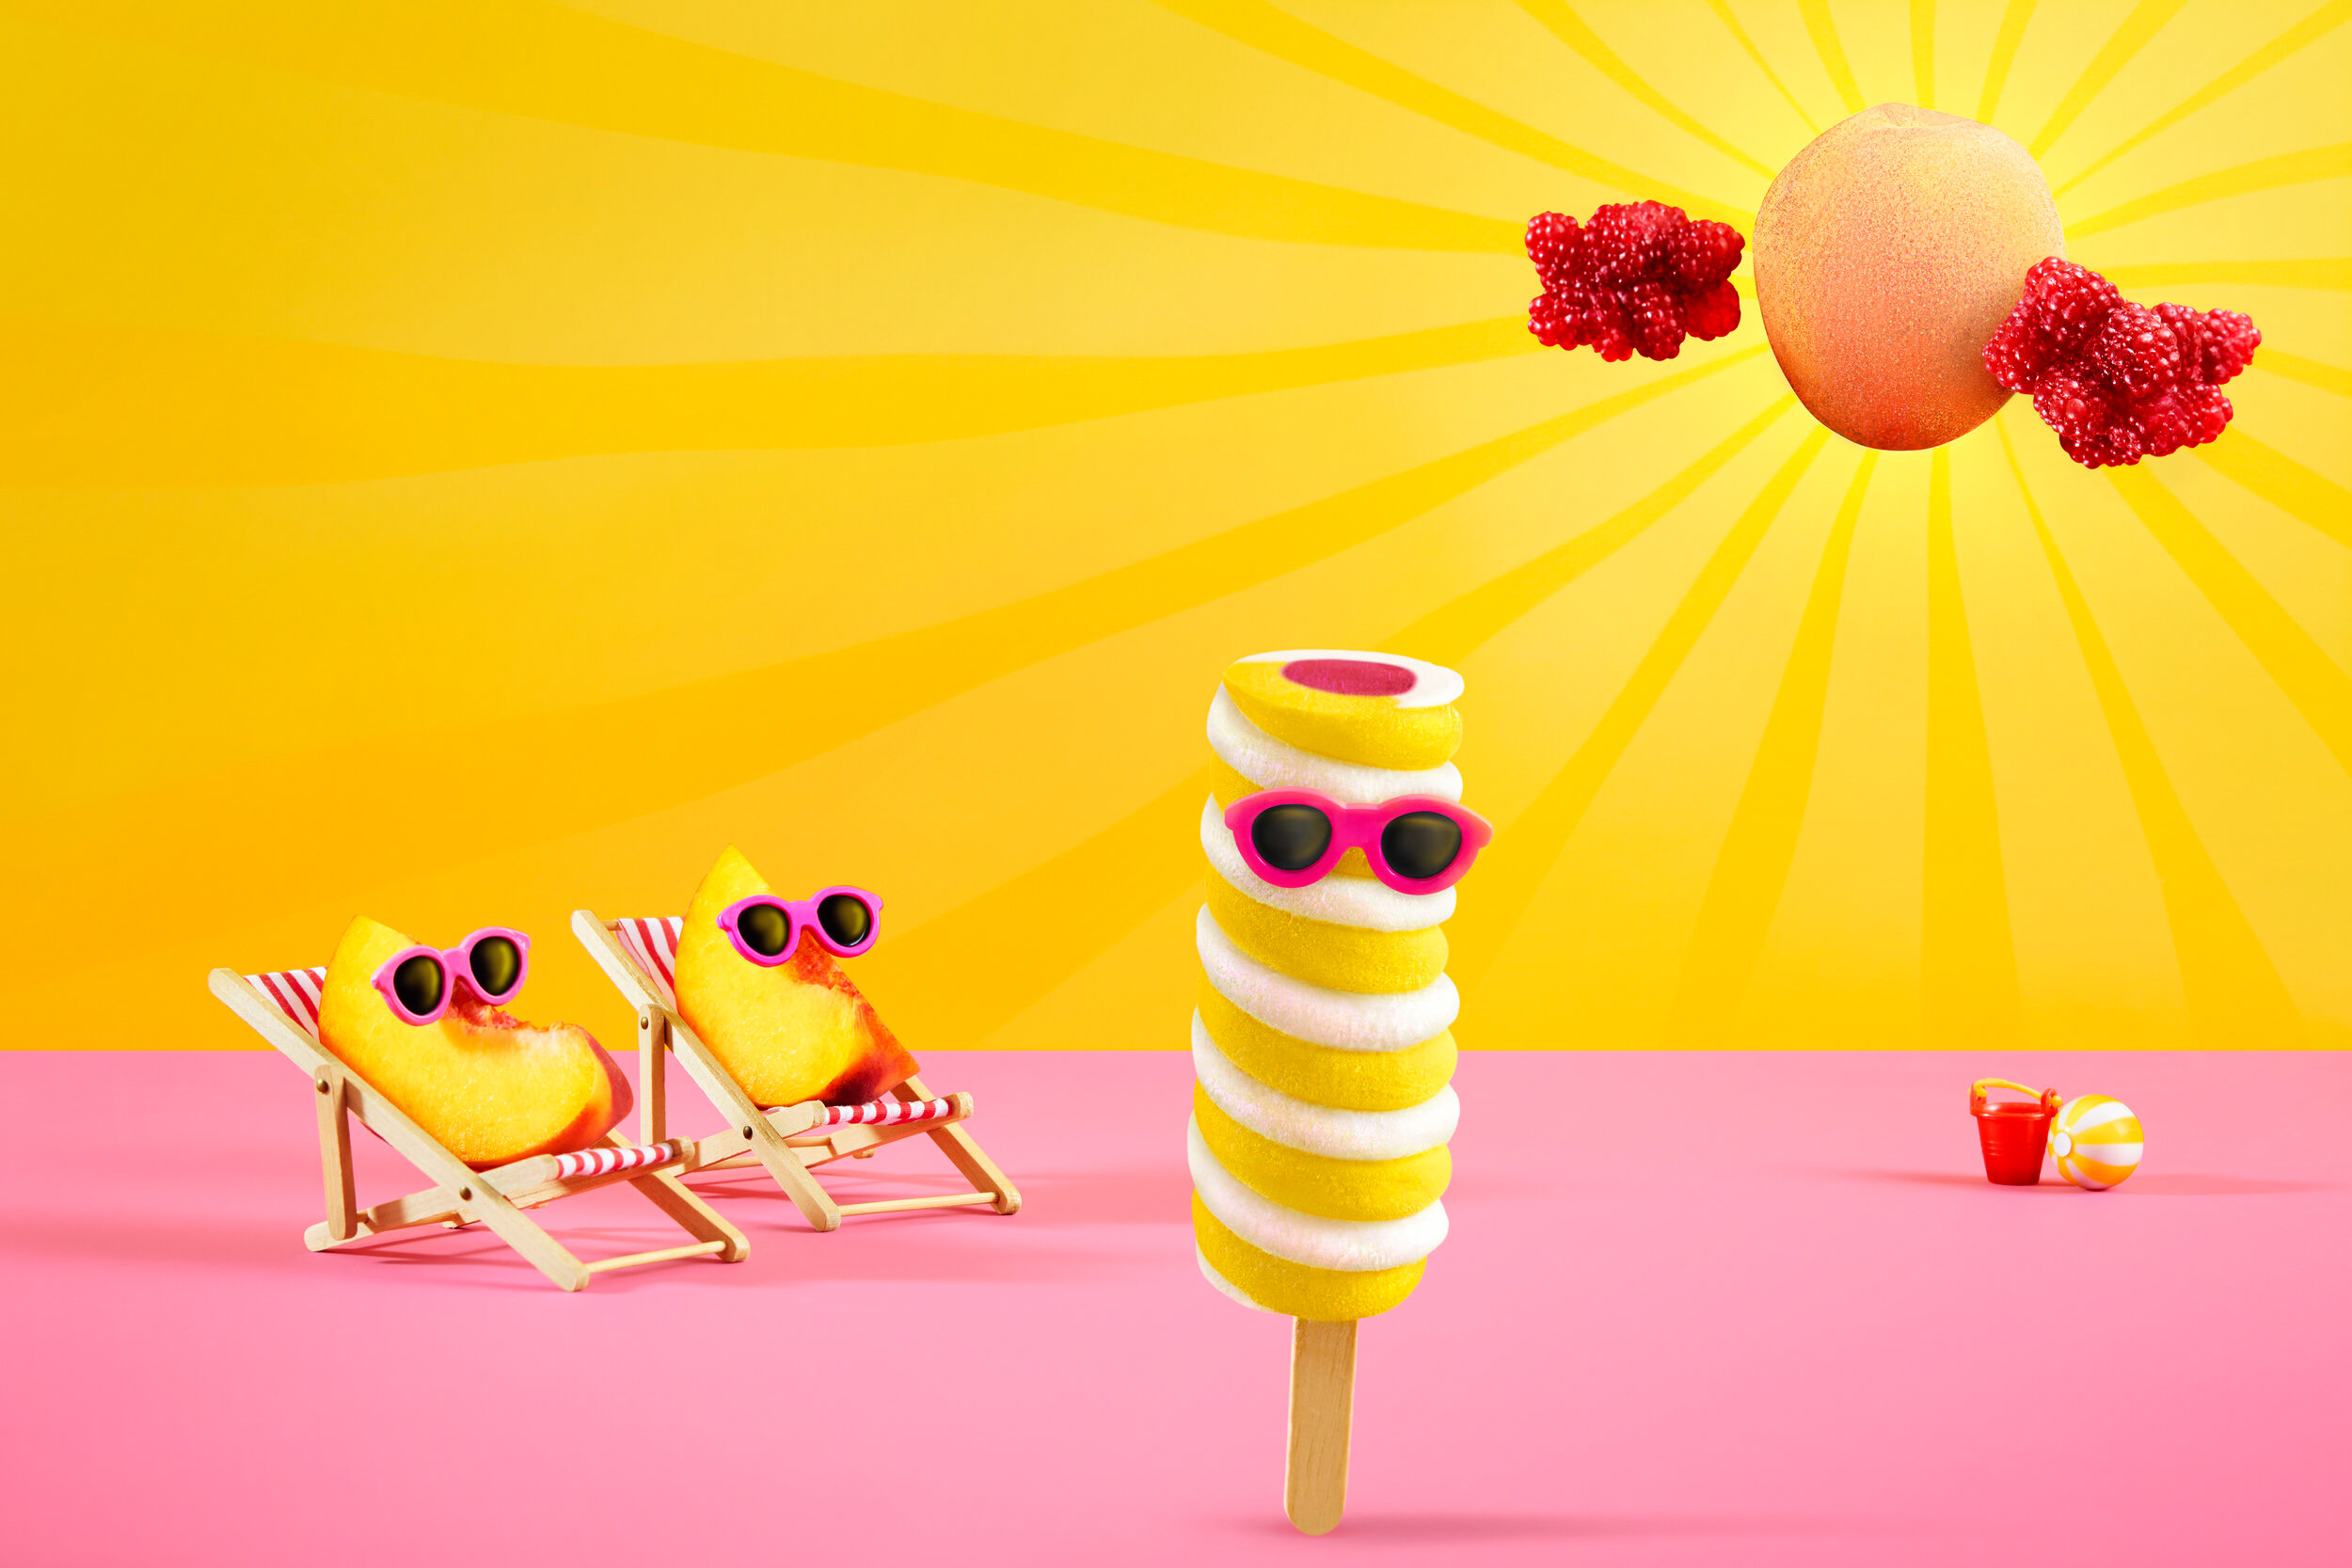 dominic-perri-new-work-unilever-popsicle-beach